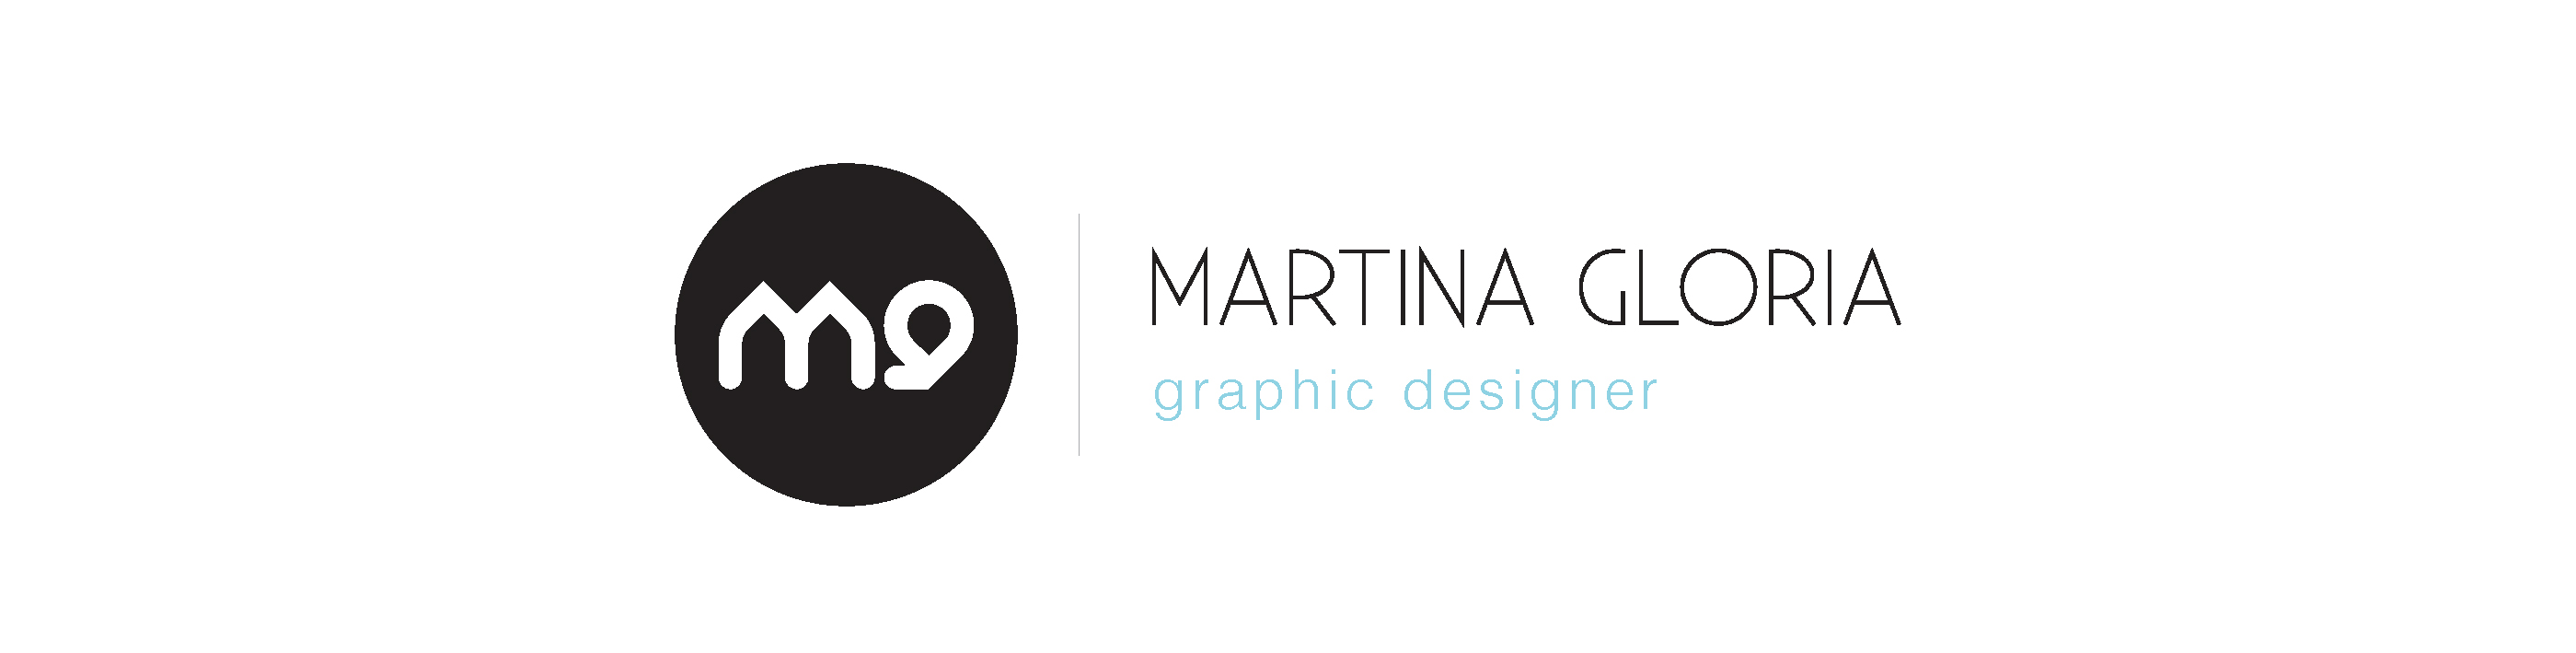 MARTINA GLORIA | GRAPHIC DESIGNER